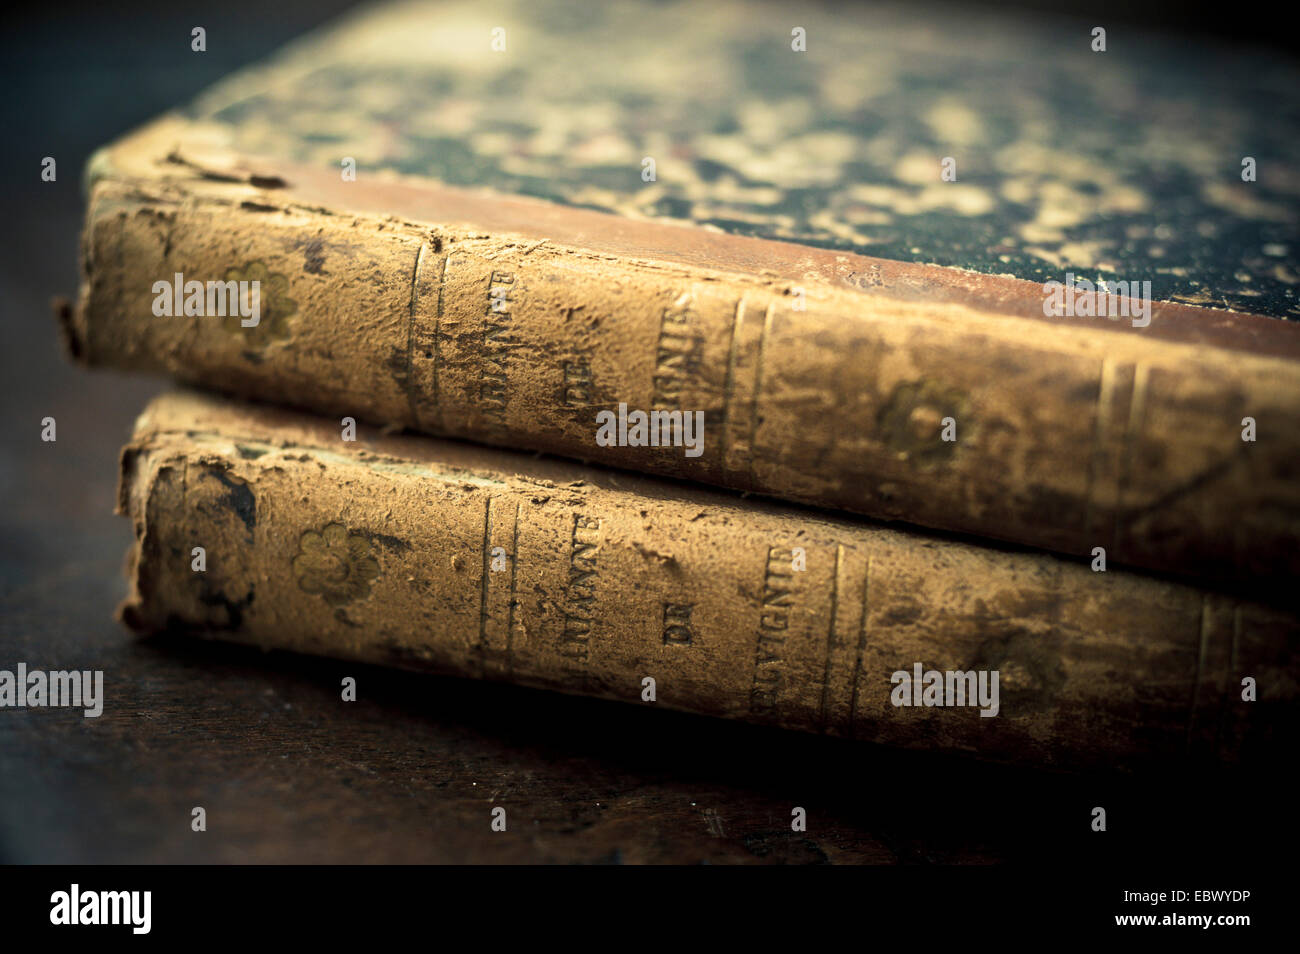 two old French books - Stock Image